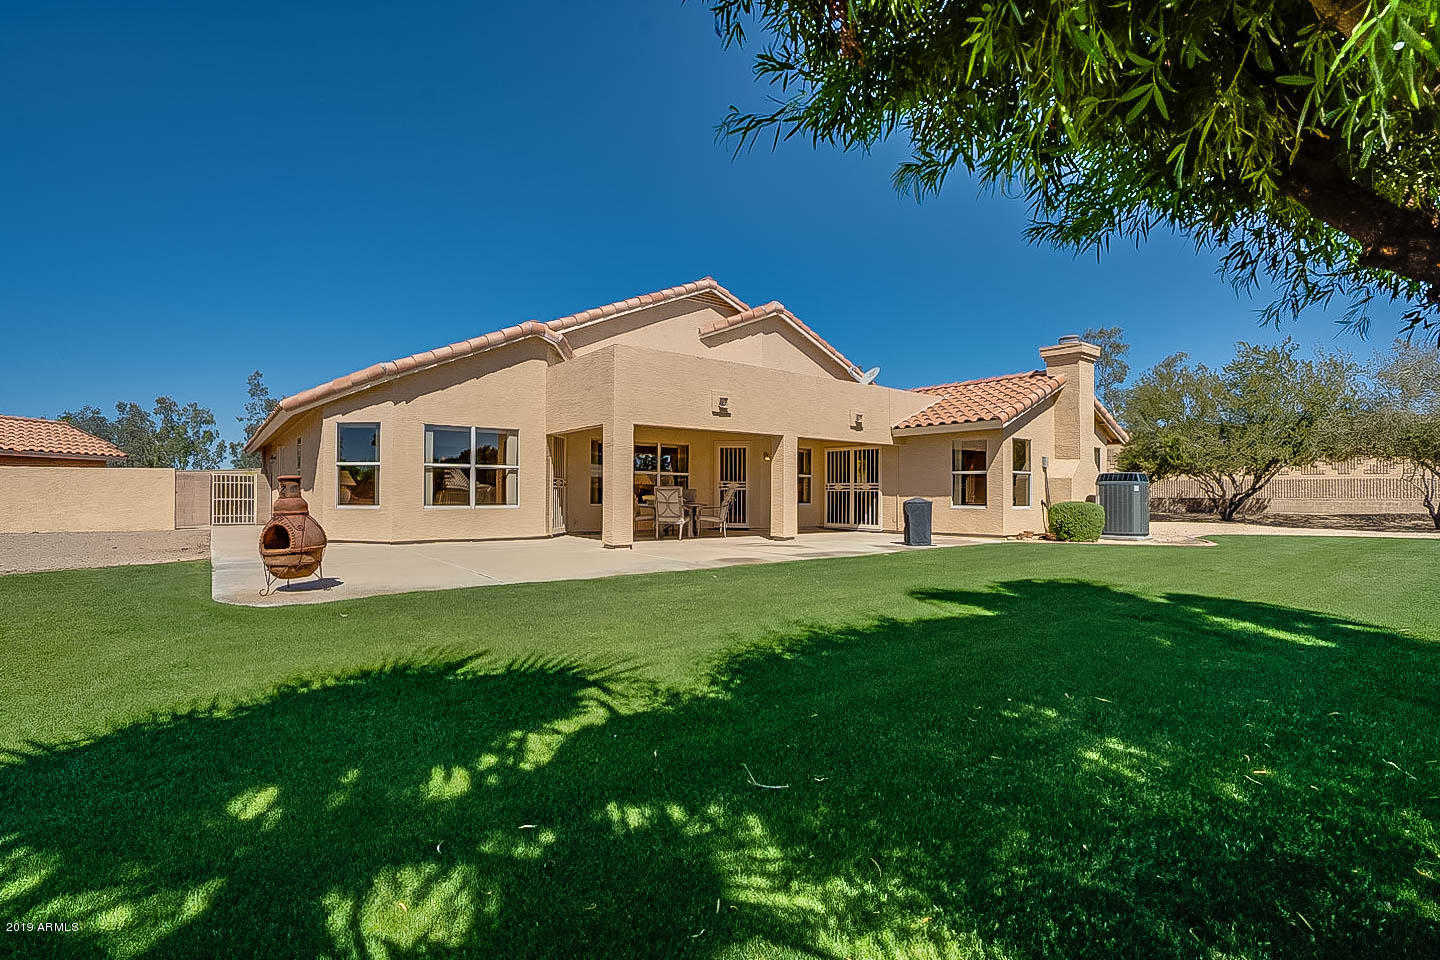 $444,900 - 4Br/2Ba - Home for Sale in Continental At Arrowhead Ranch, Glendale